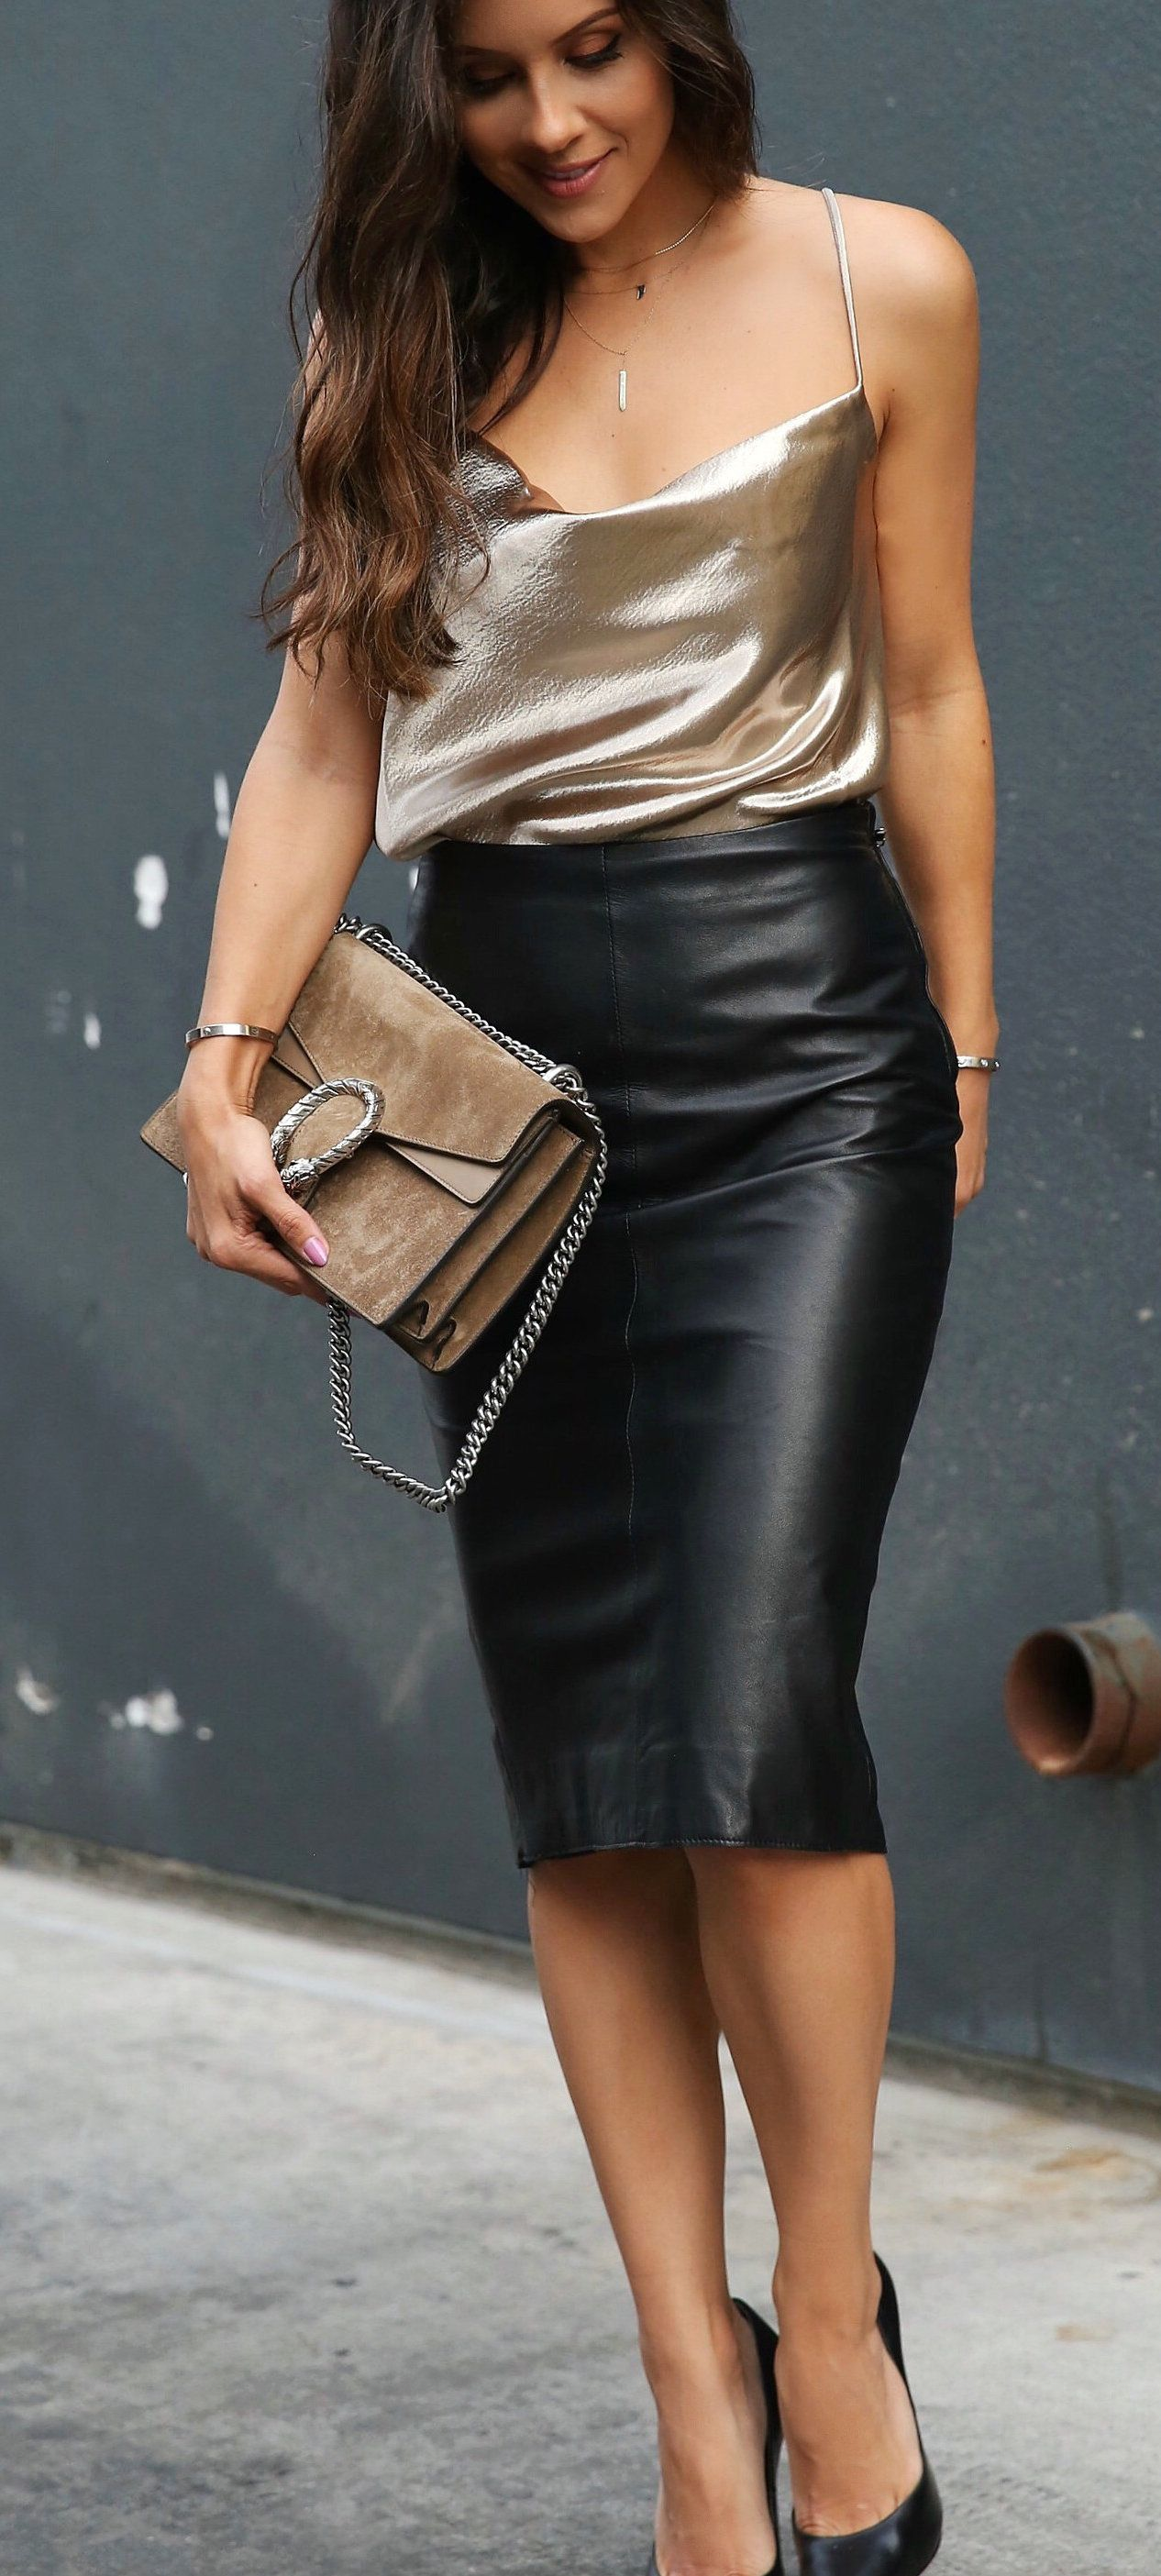 spring #outfits woman wearing black leather skirt holding brown